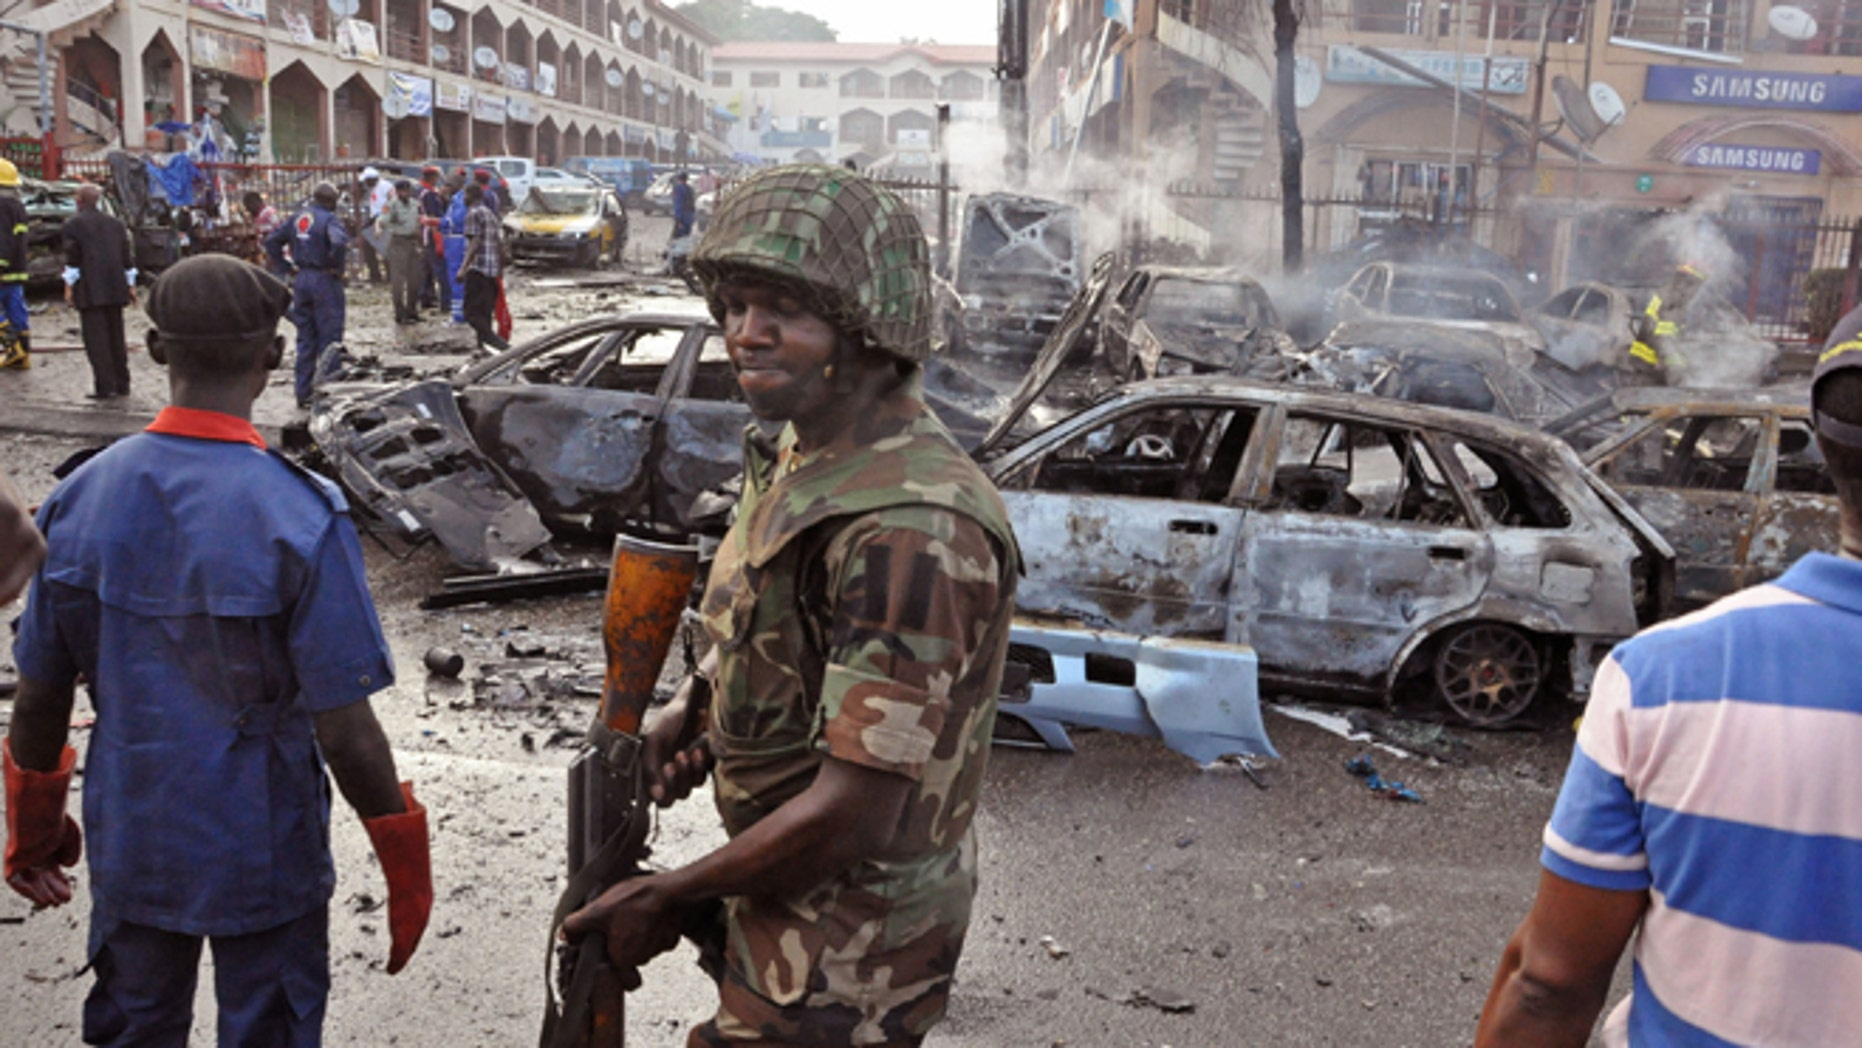 June, 25, 2014: In this file photo, a Nigerian soldier, center, walks, at the scene of an explosion in Abuja, Nigeria. A car bomb exploded in a market in Nigeria's northeastern city of Maiduguri on Tuesday morning, July 1, 2014  and dozens of people are feared dead, witnesses said.